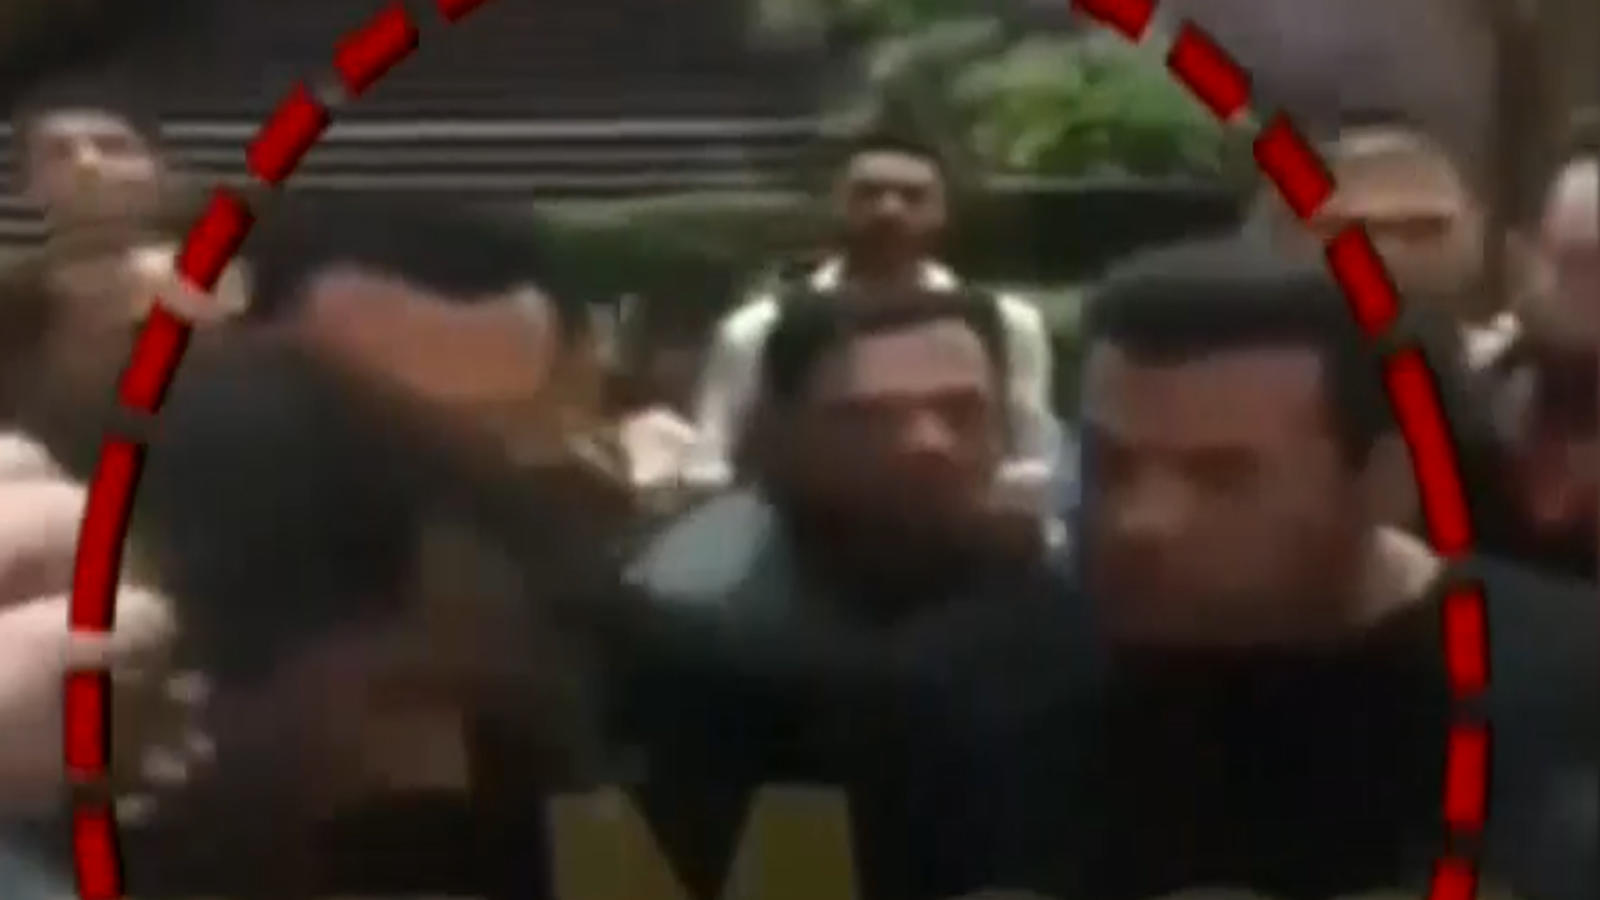 On cam: Salman Khan slaps security guard who misbehaved with child